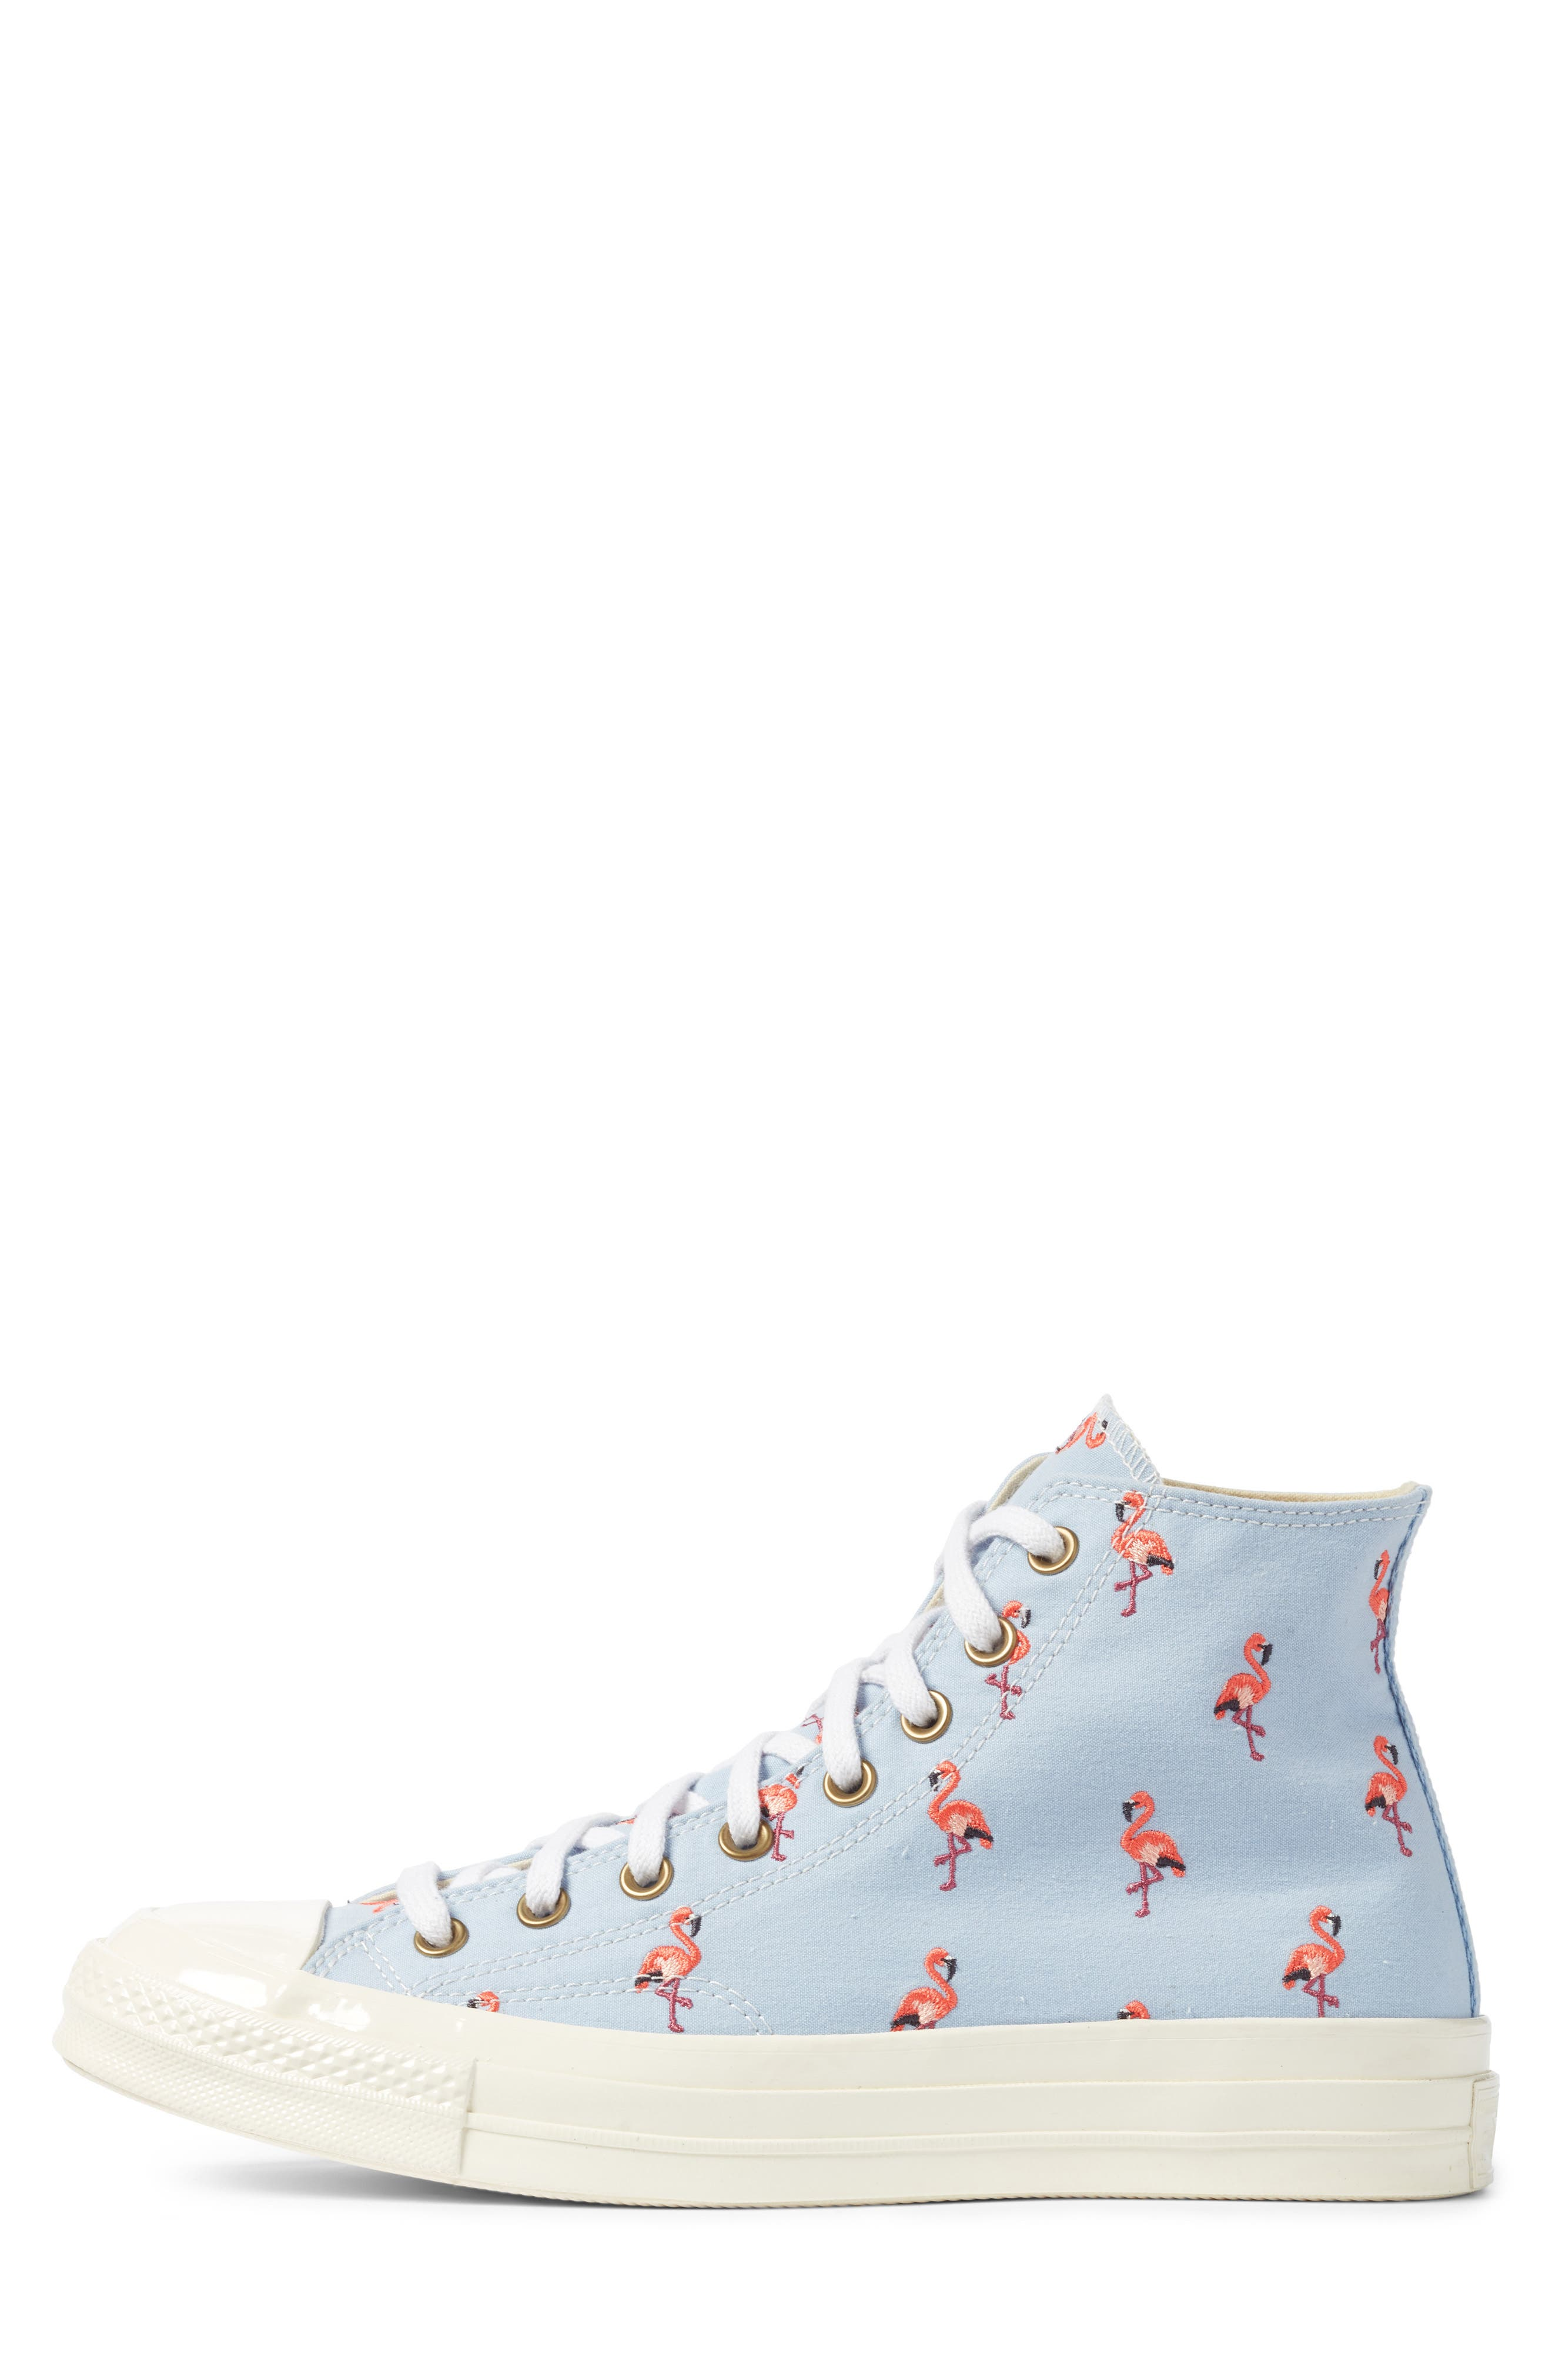 Chuck Taylor<sup>®</sup> All Star<sup>®</sup> Chuck 70 Flamingo Sneaker,                             Alternate thumbnail 3, color,                             457